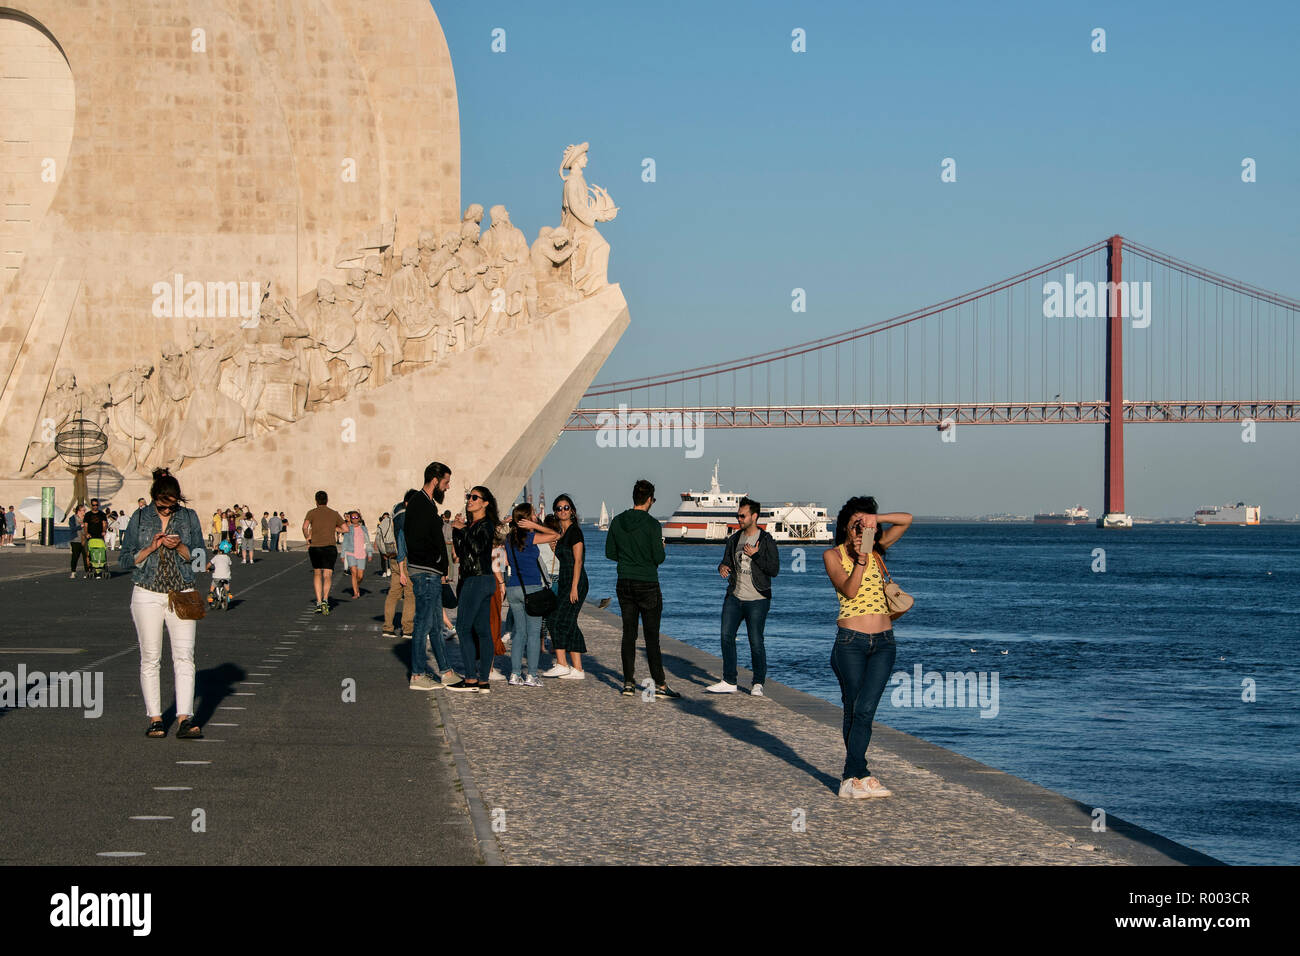 Monument to the Discoveries, Padrao dos Descobrimentos, on the banks of the Tagus River  (Rio Tejo) in the Belem district, Lisbon, Portugal. - Stock Image